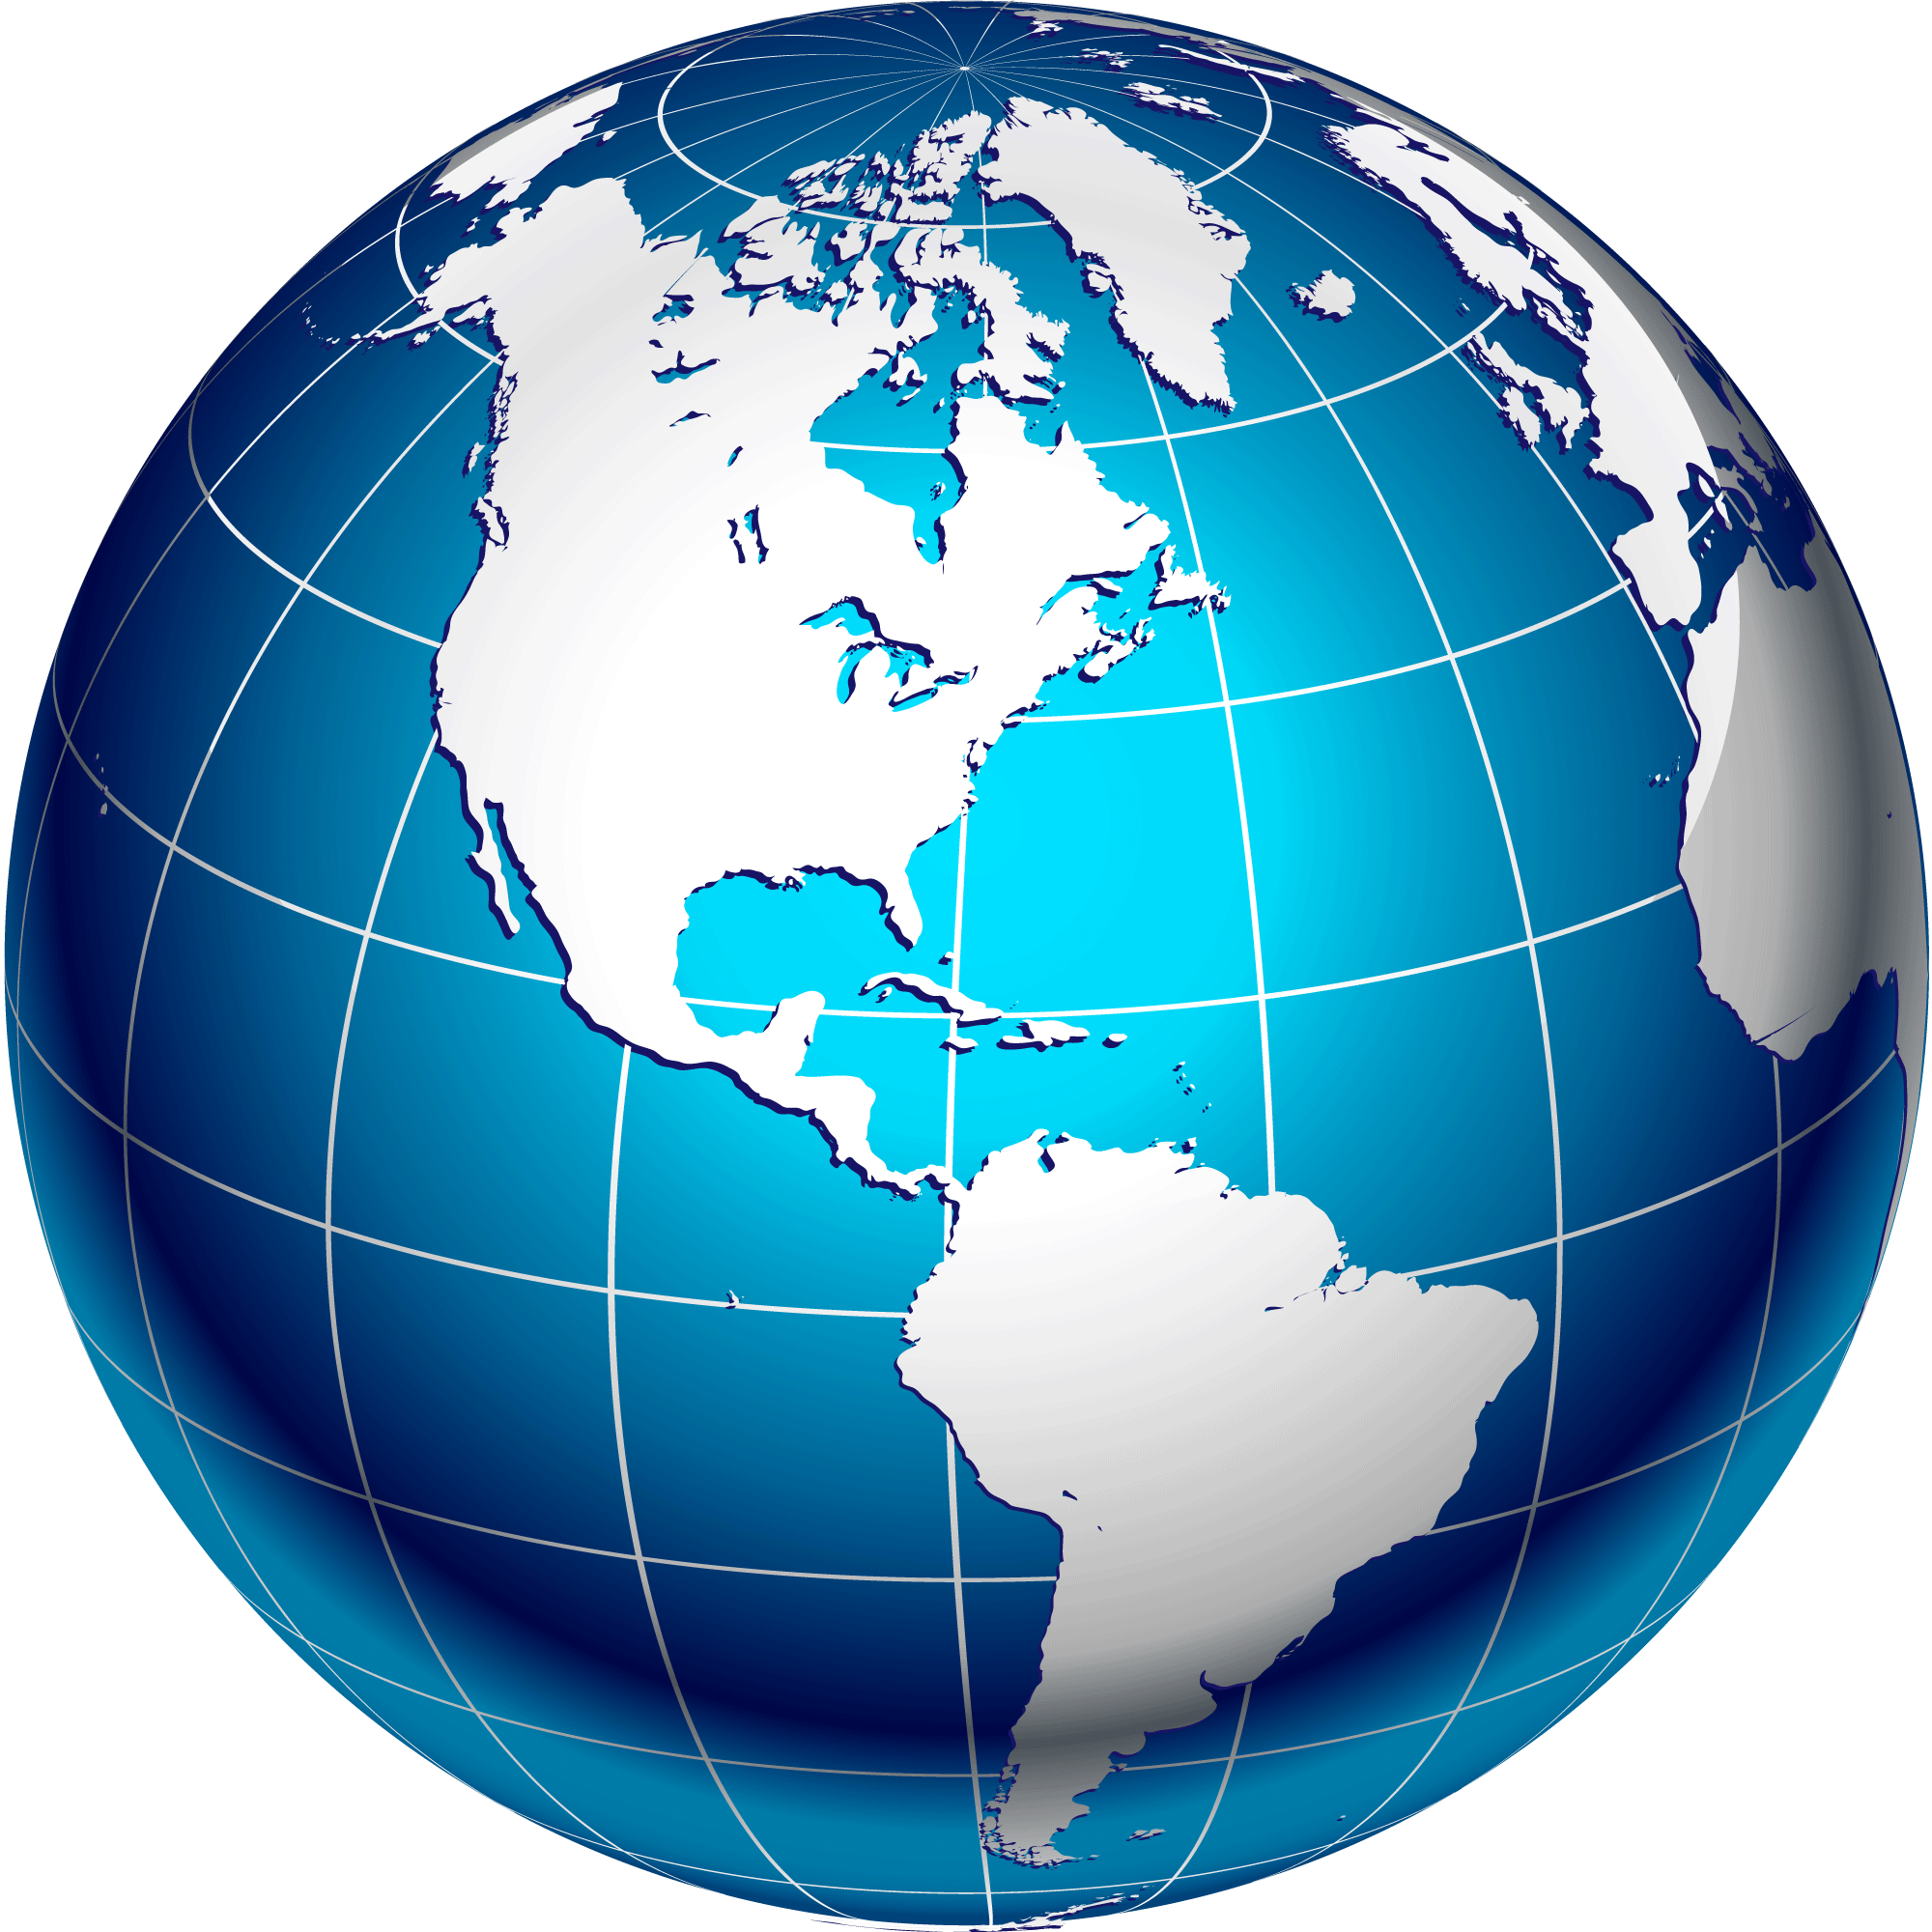 Globe png transparent background. Pic arts